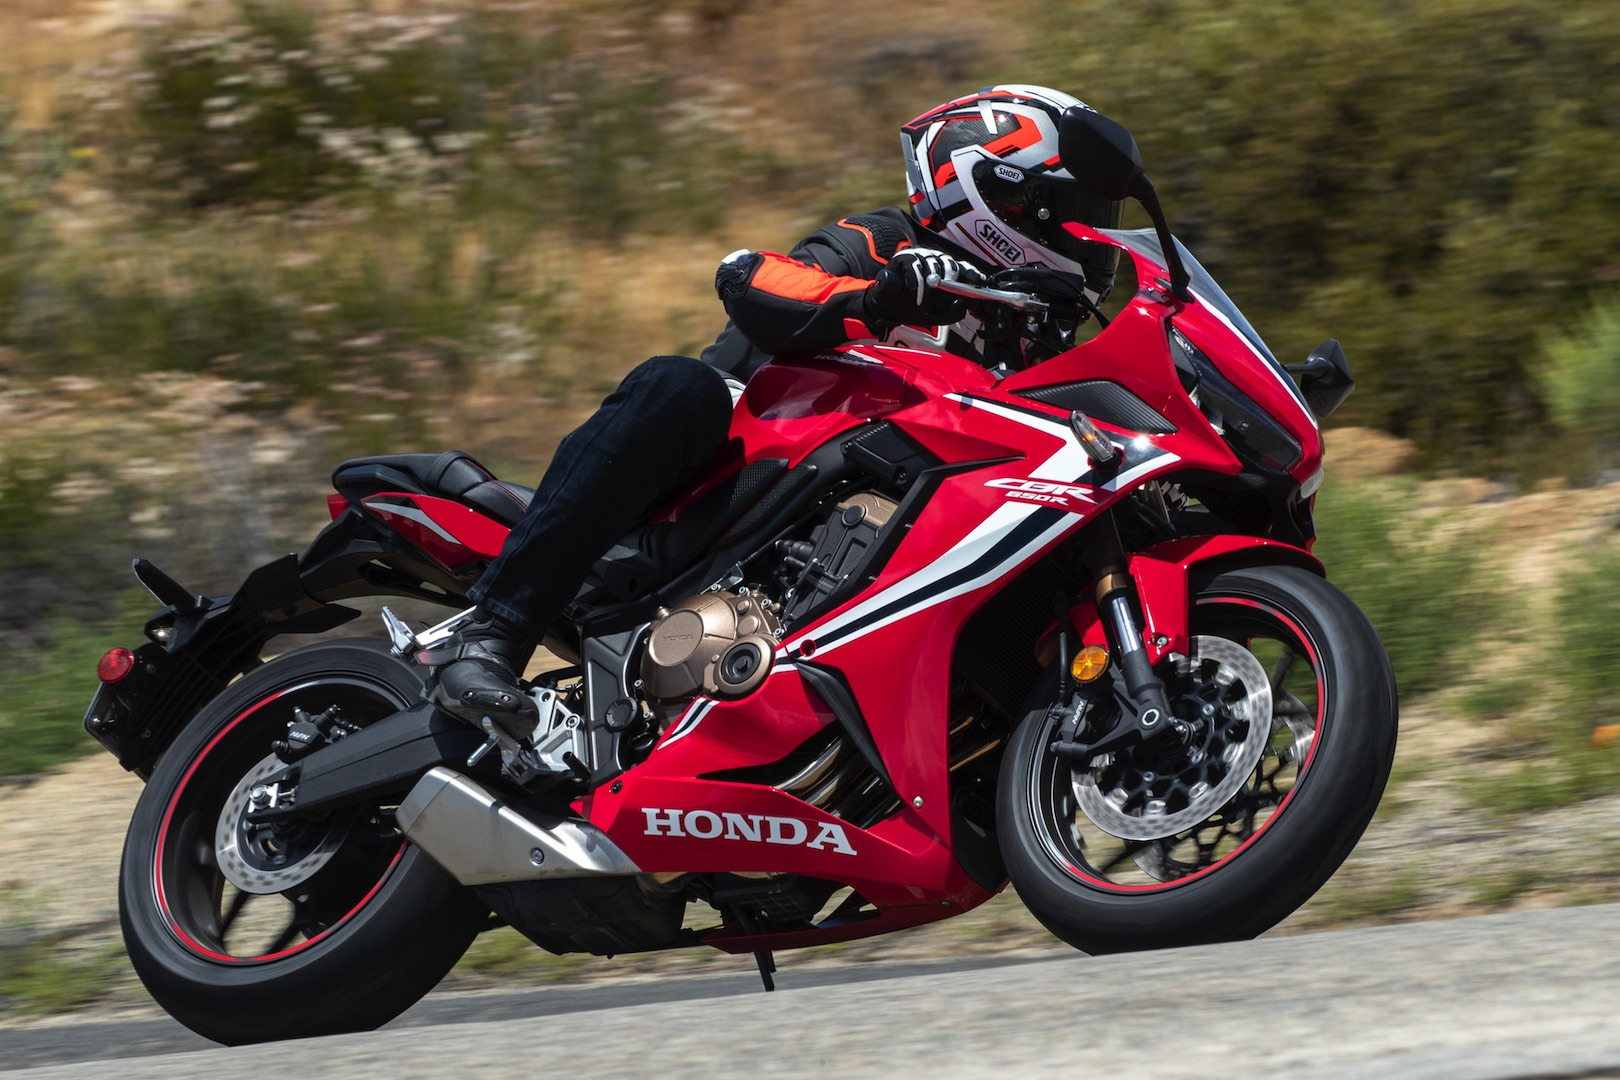 2018 Honda CB1000R First Look | 14 Fast Facts